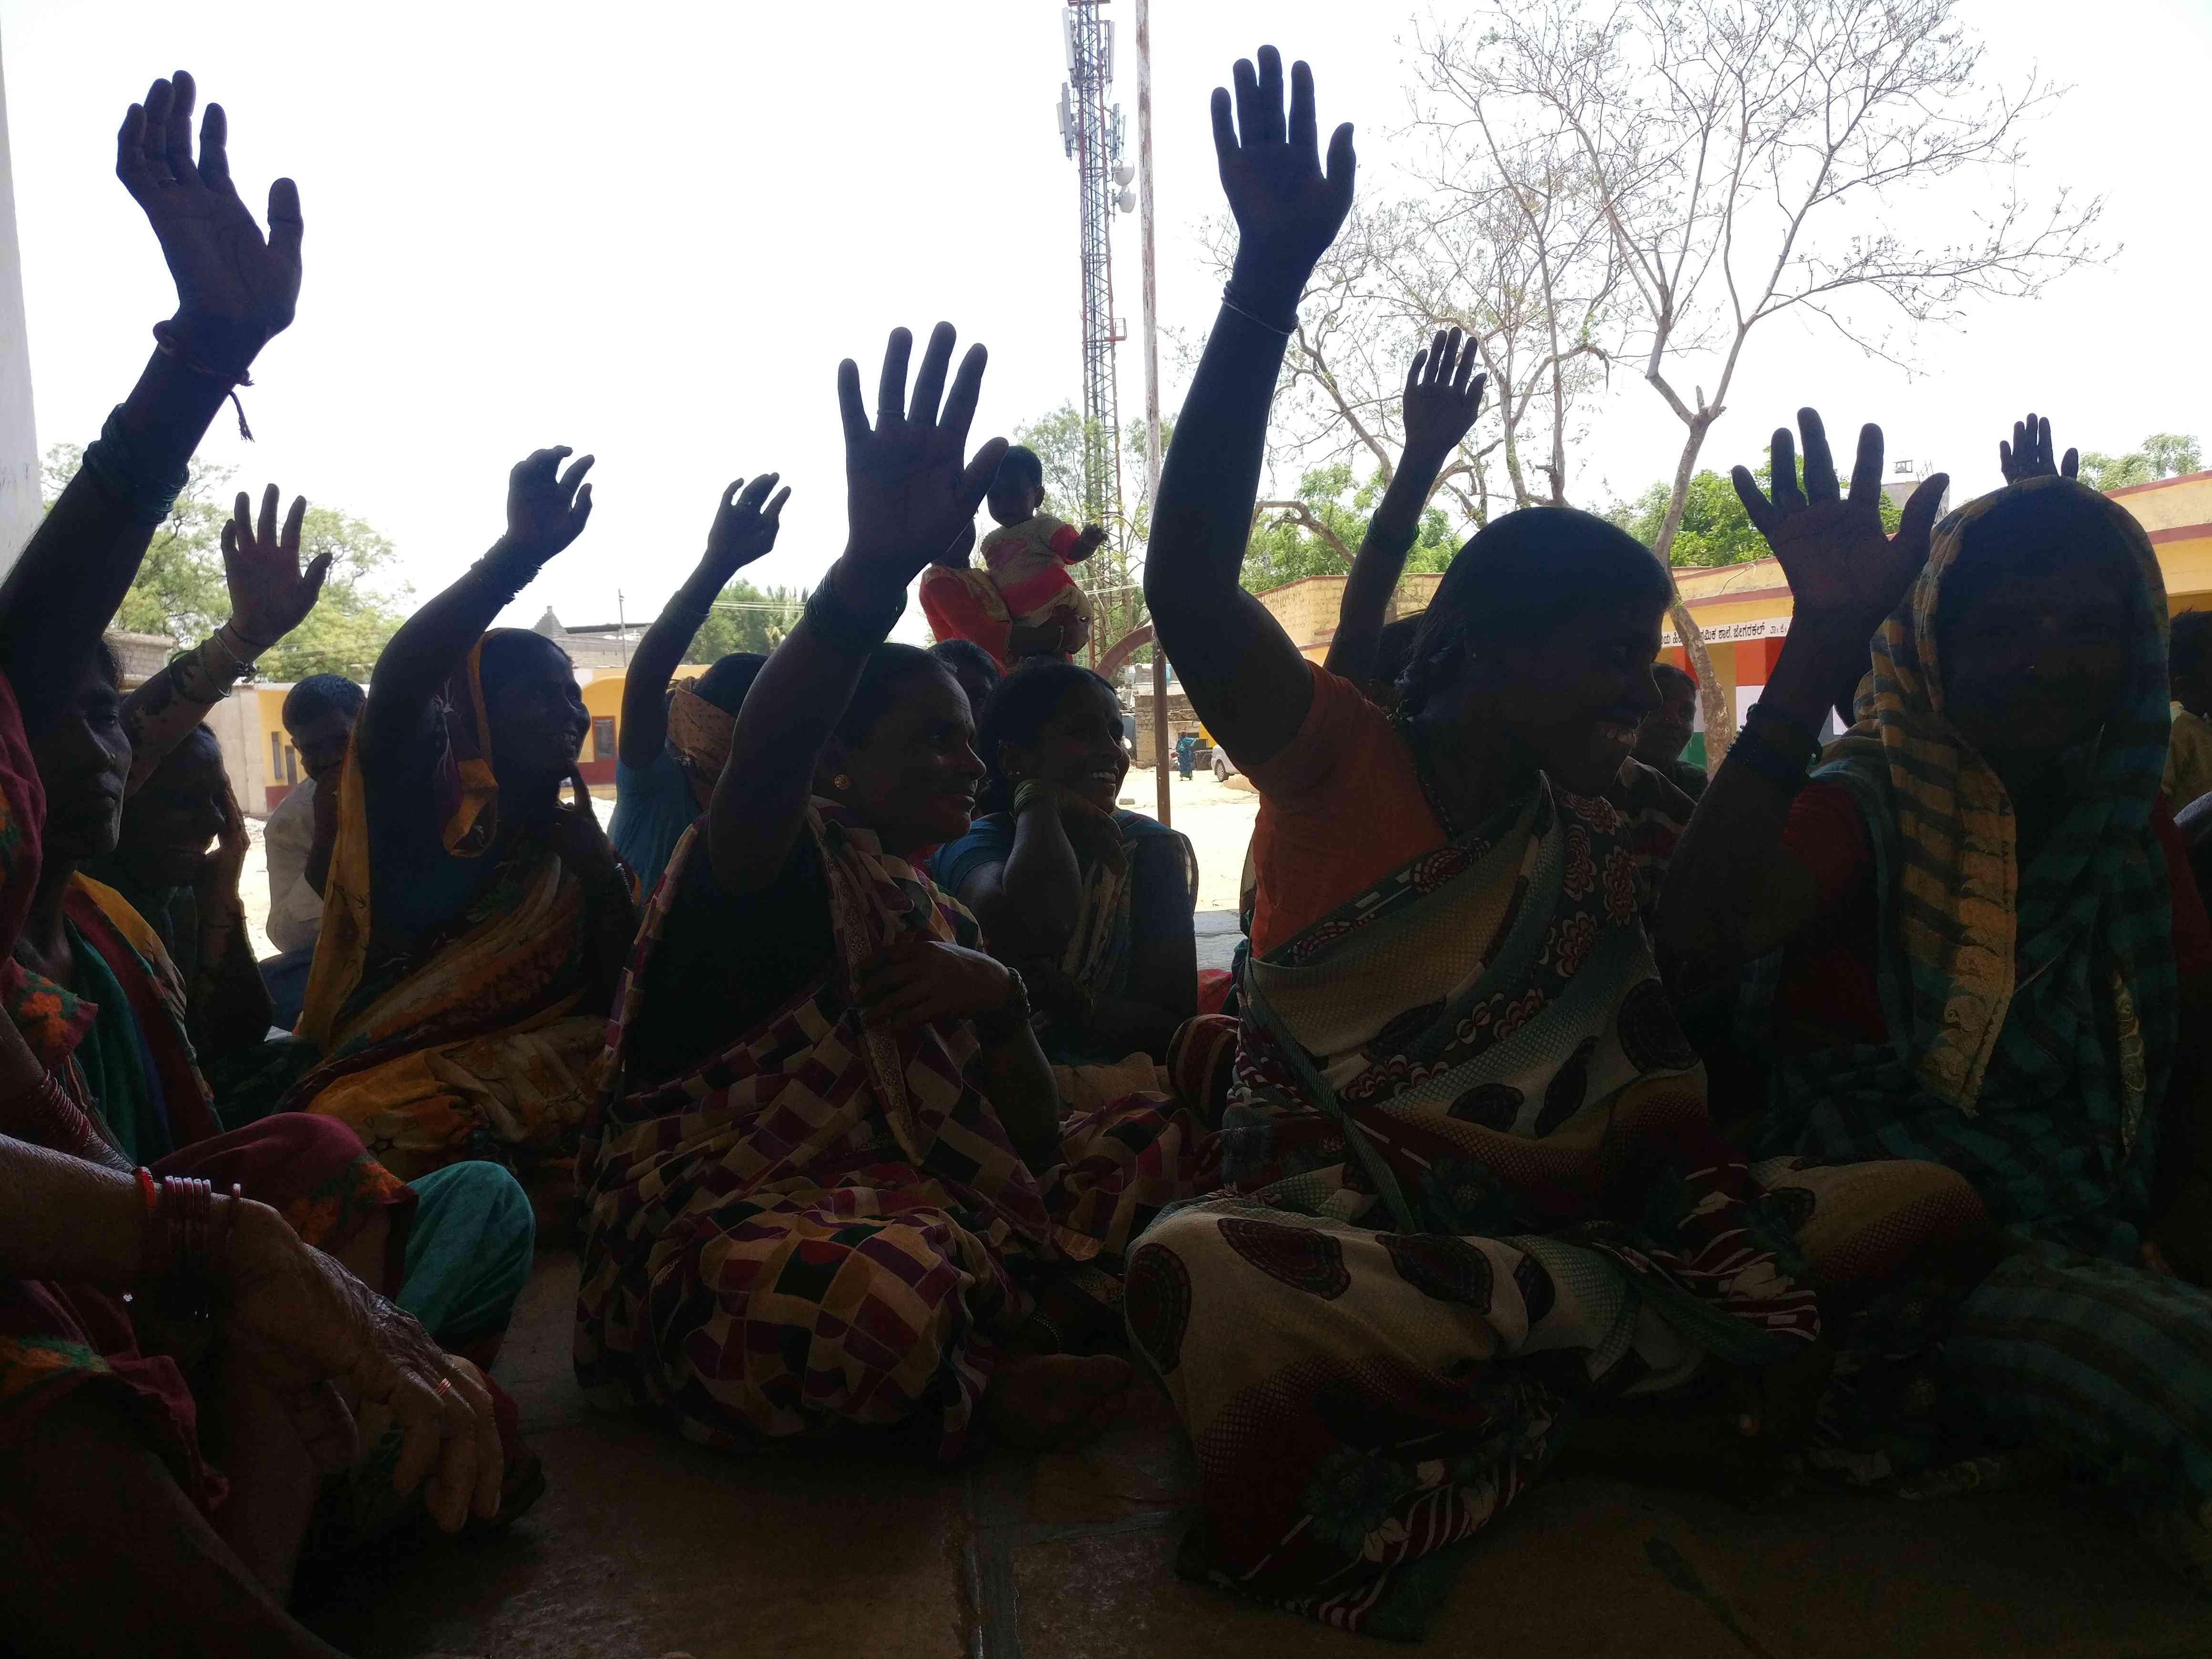 Women in Jegarkal village respond when an activist asks them how many think it is a good idea to withhold their vote to call attention to a liquor ban. Photo credit: Nayantara Narayanan